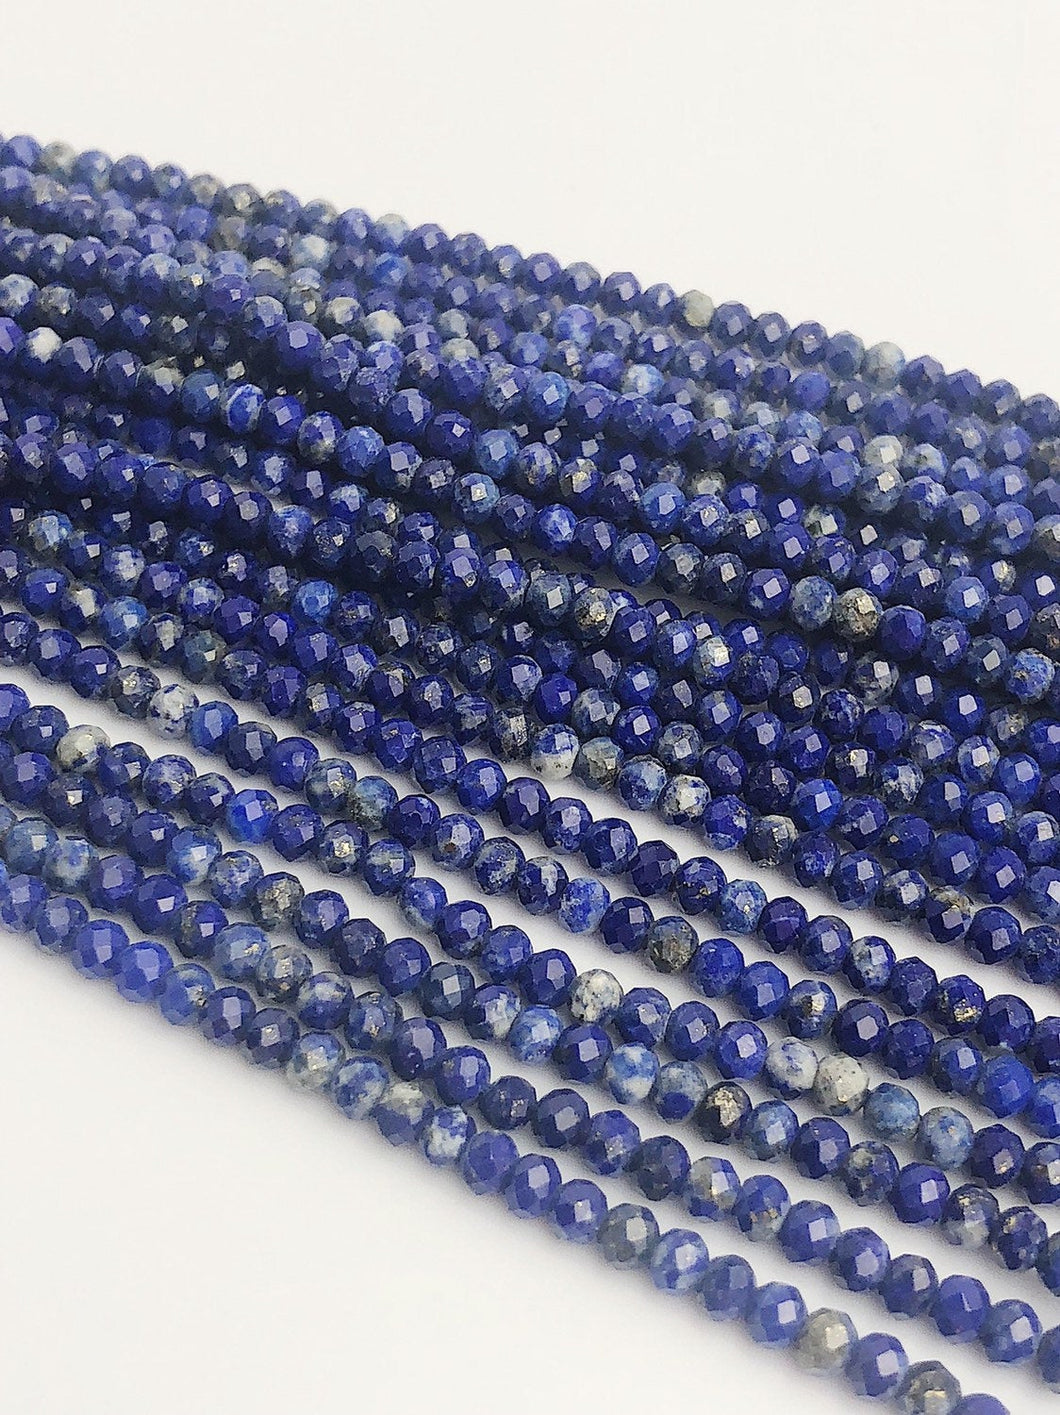 HALF OFF SALE - Blue Lapis Gemstone Beads, Full Strand, Semi Precious Gemstone, 15